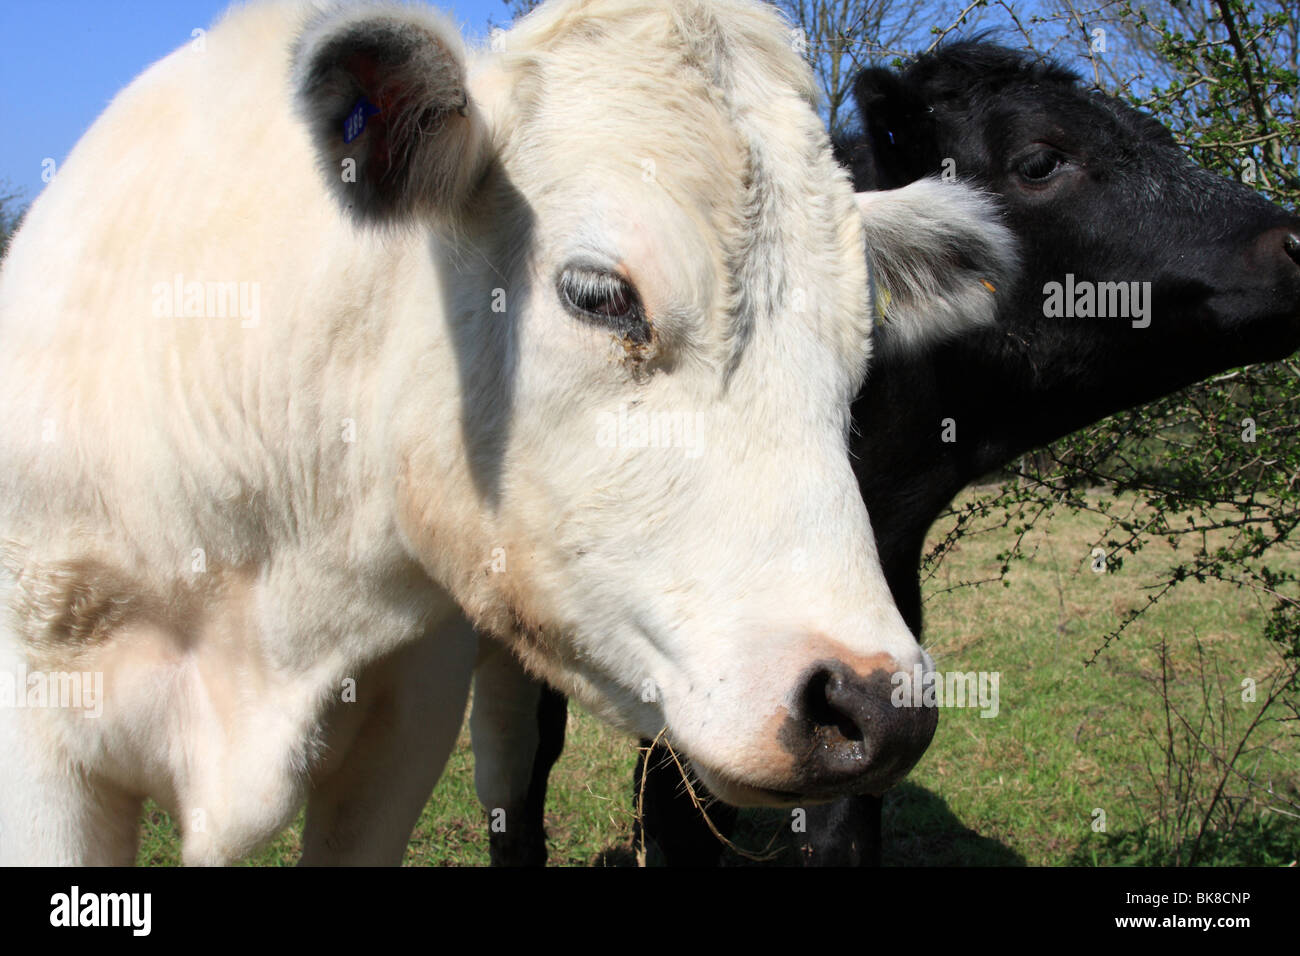 Cattle on a U.K. farm. - Stock Image